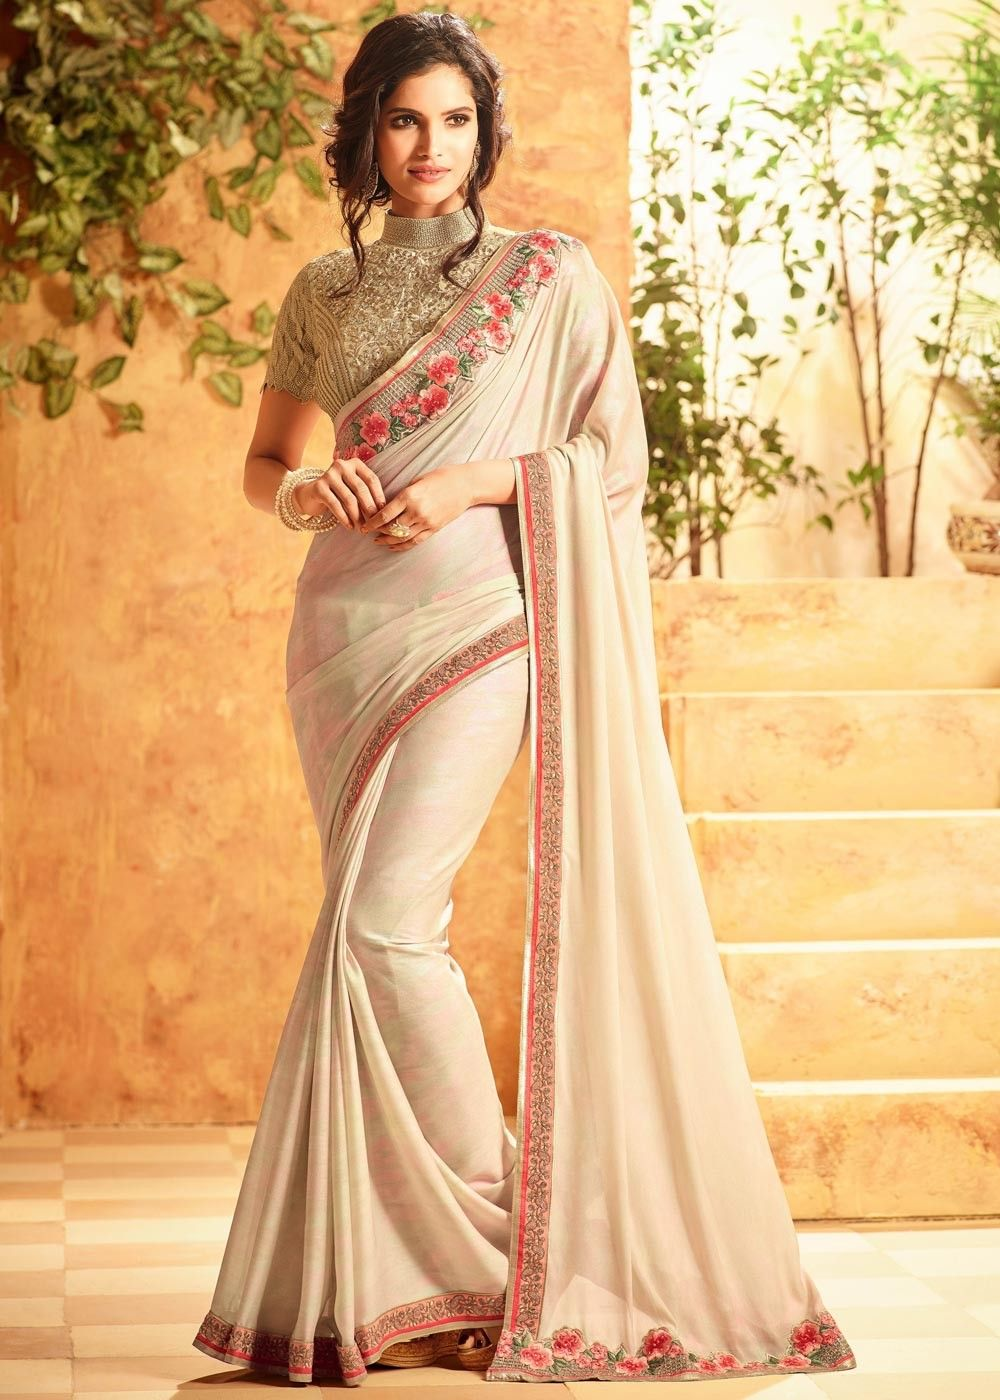 2abe1cdab9db79 Look gracious by  draping this  beige  georgette  saree with  shimmer  effect and light floral  embroidered  zari border.H